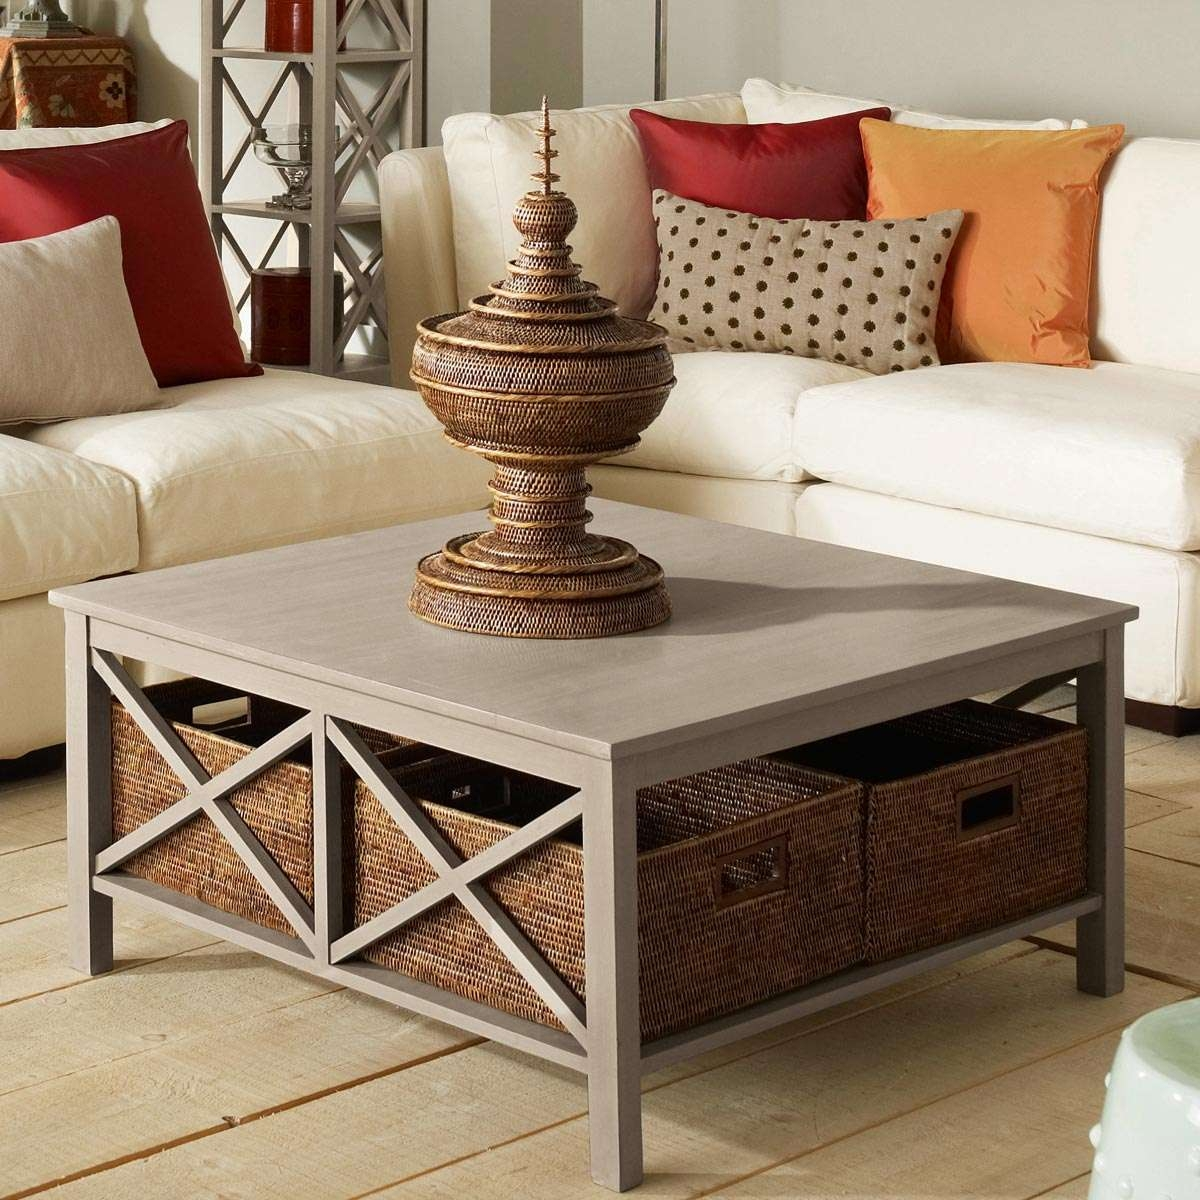 Square Coffee Table With Storage (View 19 of 20)